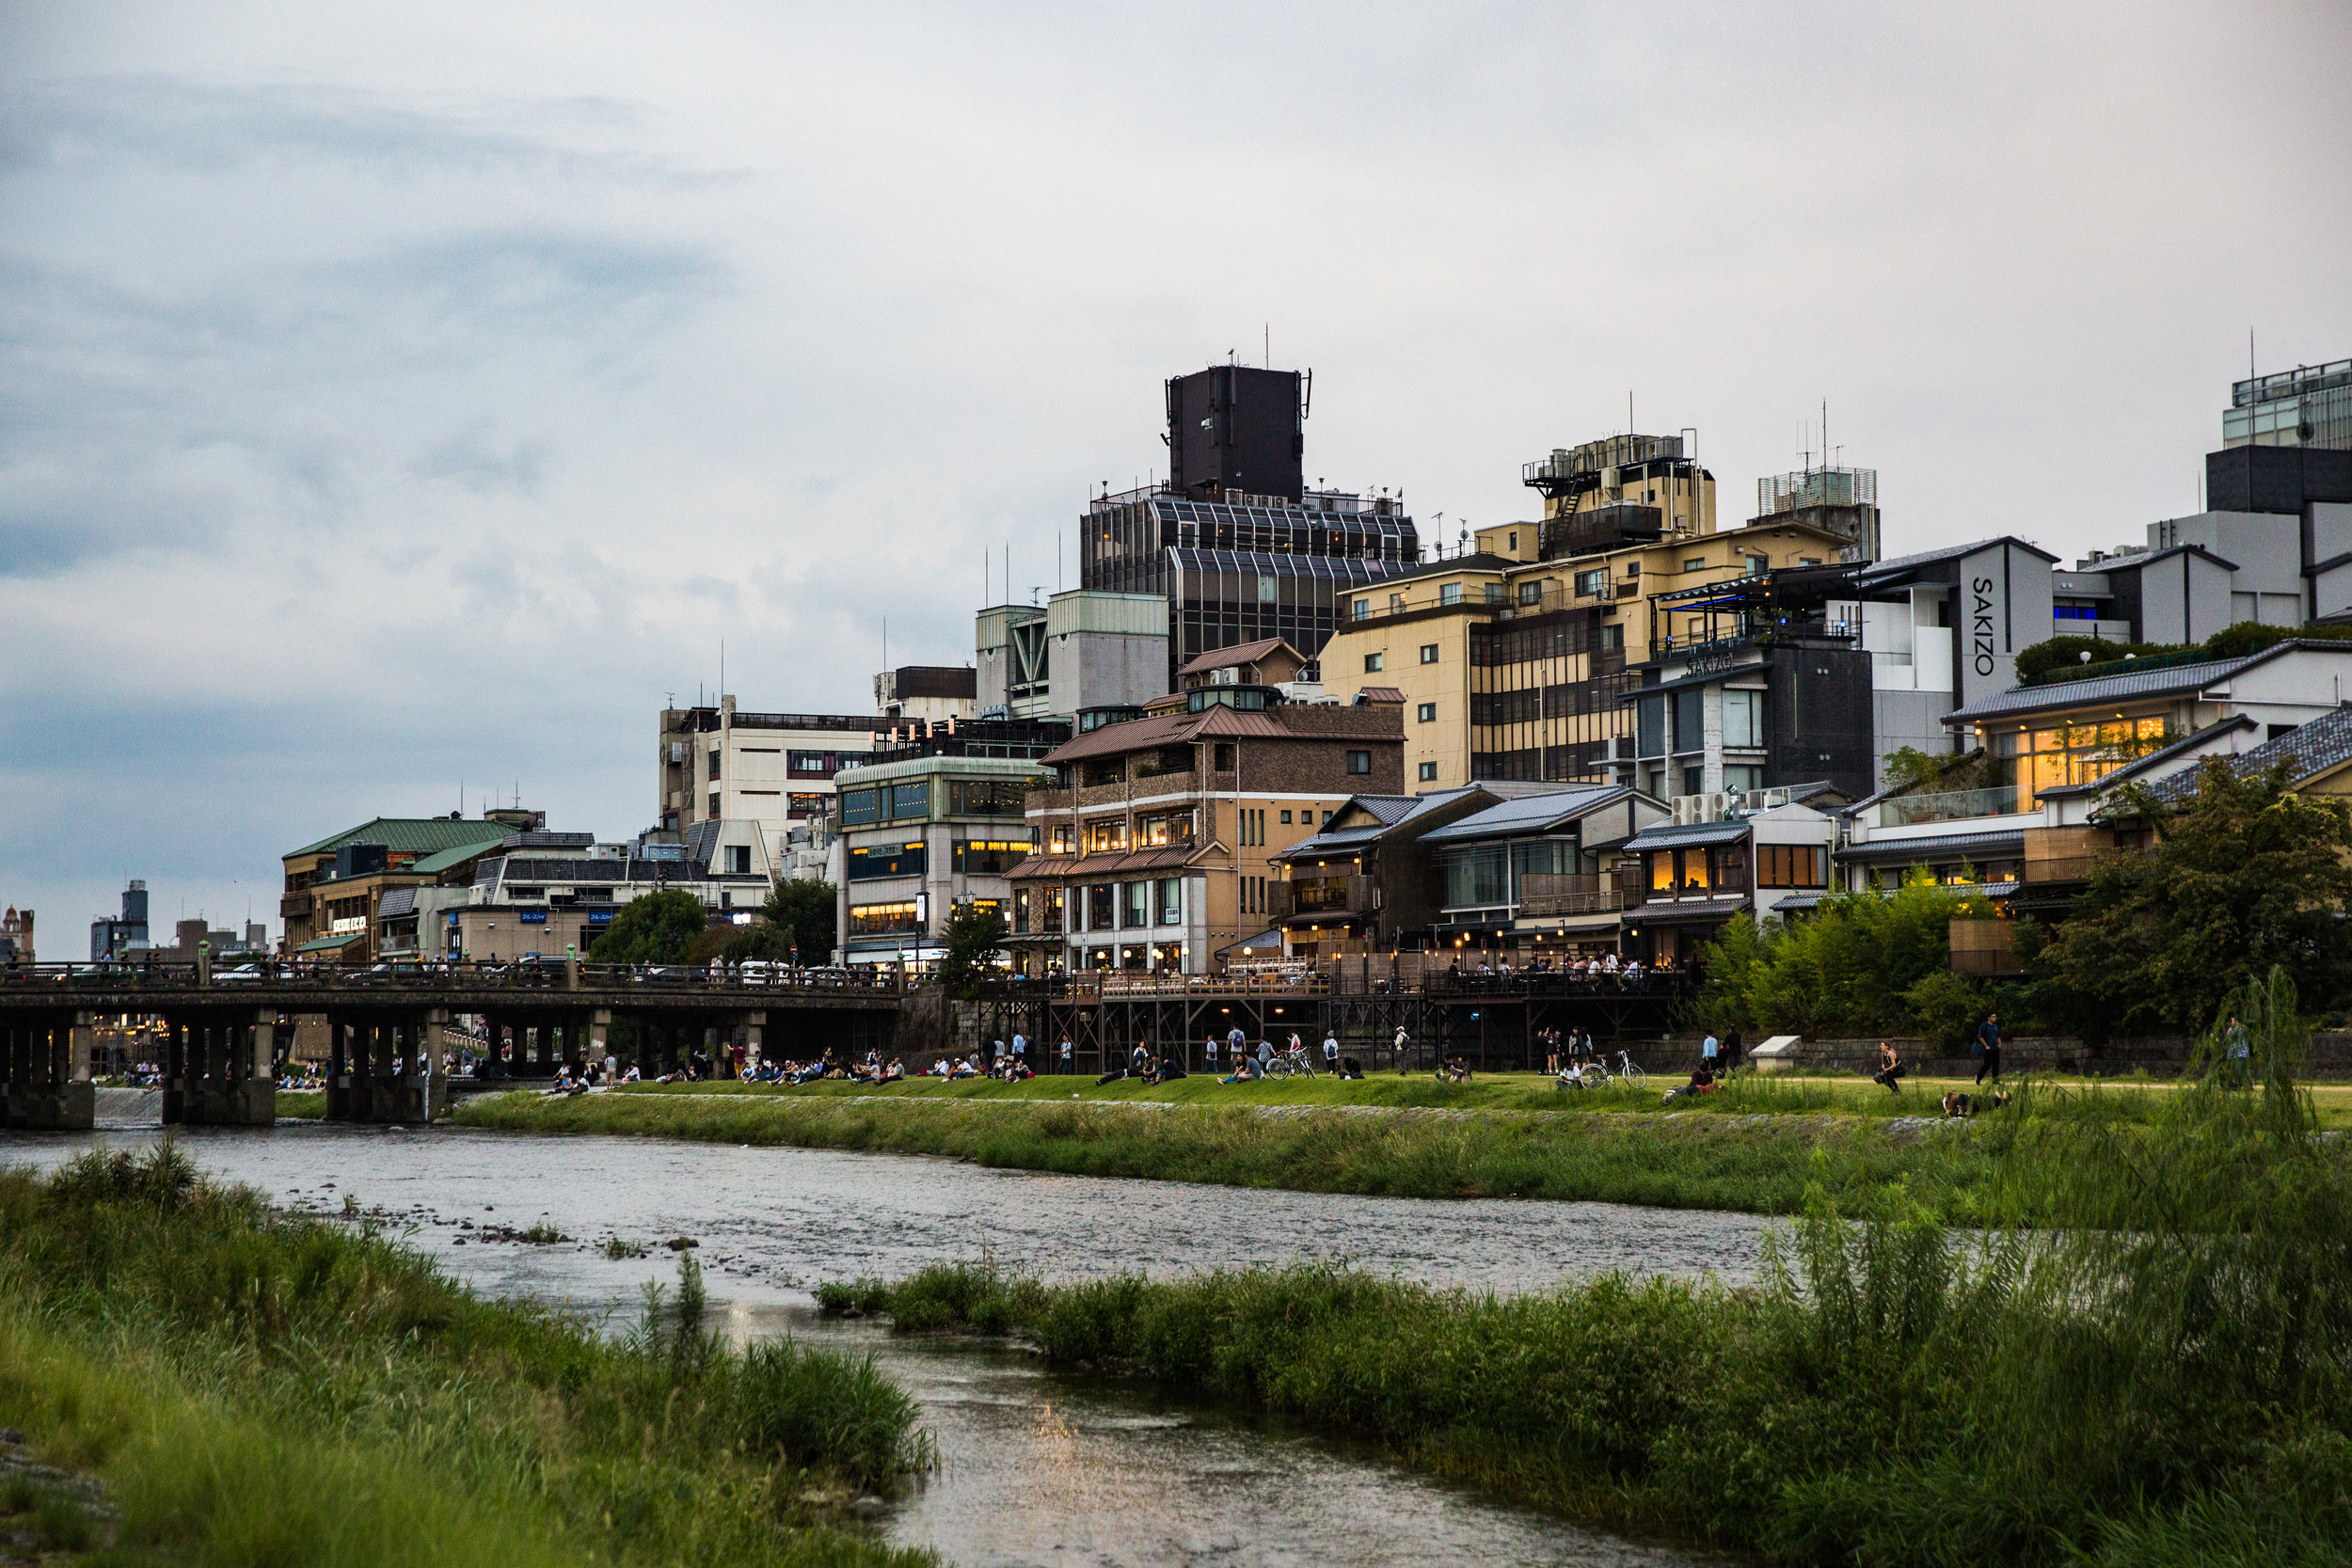 Locals and tourists alike enjoy the riverbank before making their way to Pontocho Alley for shopping, food, and sightseeing.